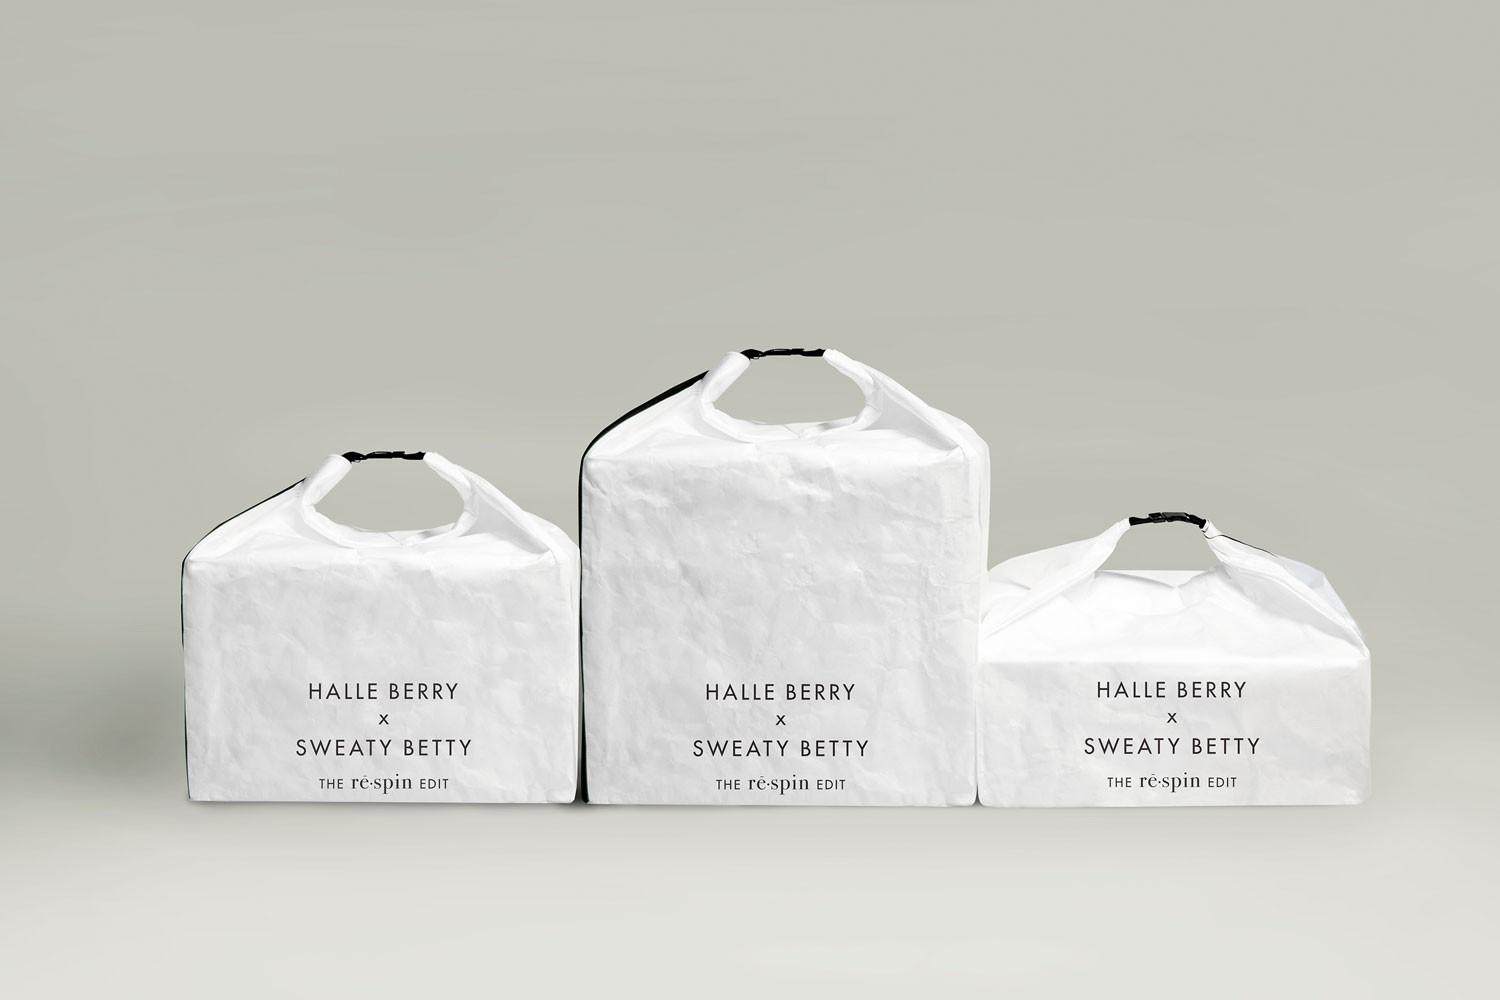 vip-gifting_packaging_production_manufacture_halle-berry_sweaty-betty_handmade_launch_a-list_celebrity_tyvek_colorplan_g-f-s...